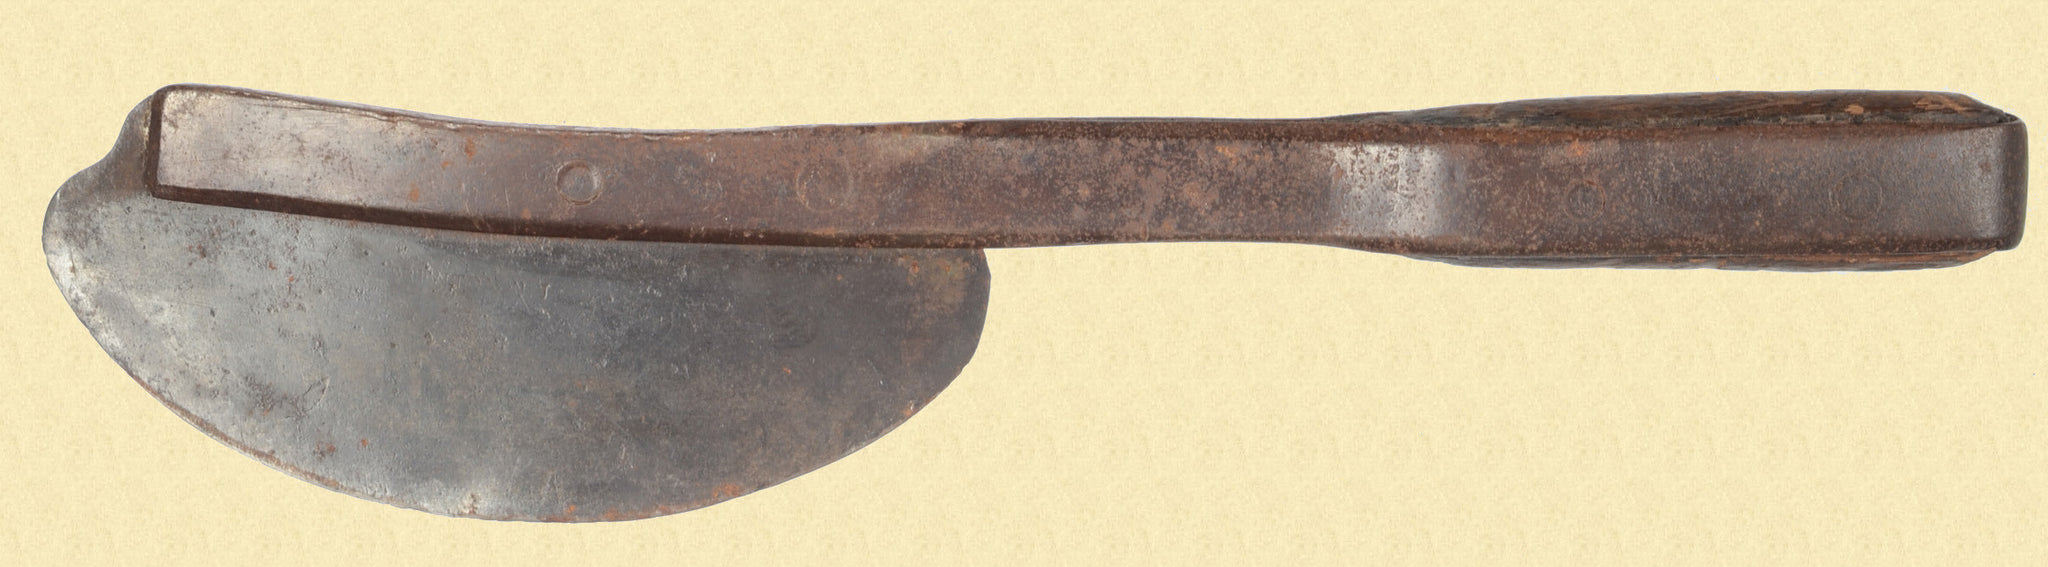 ANTIQUE CHOPPING TOOL